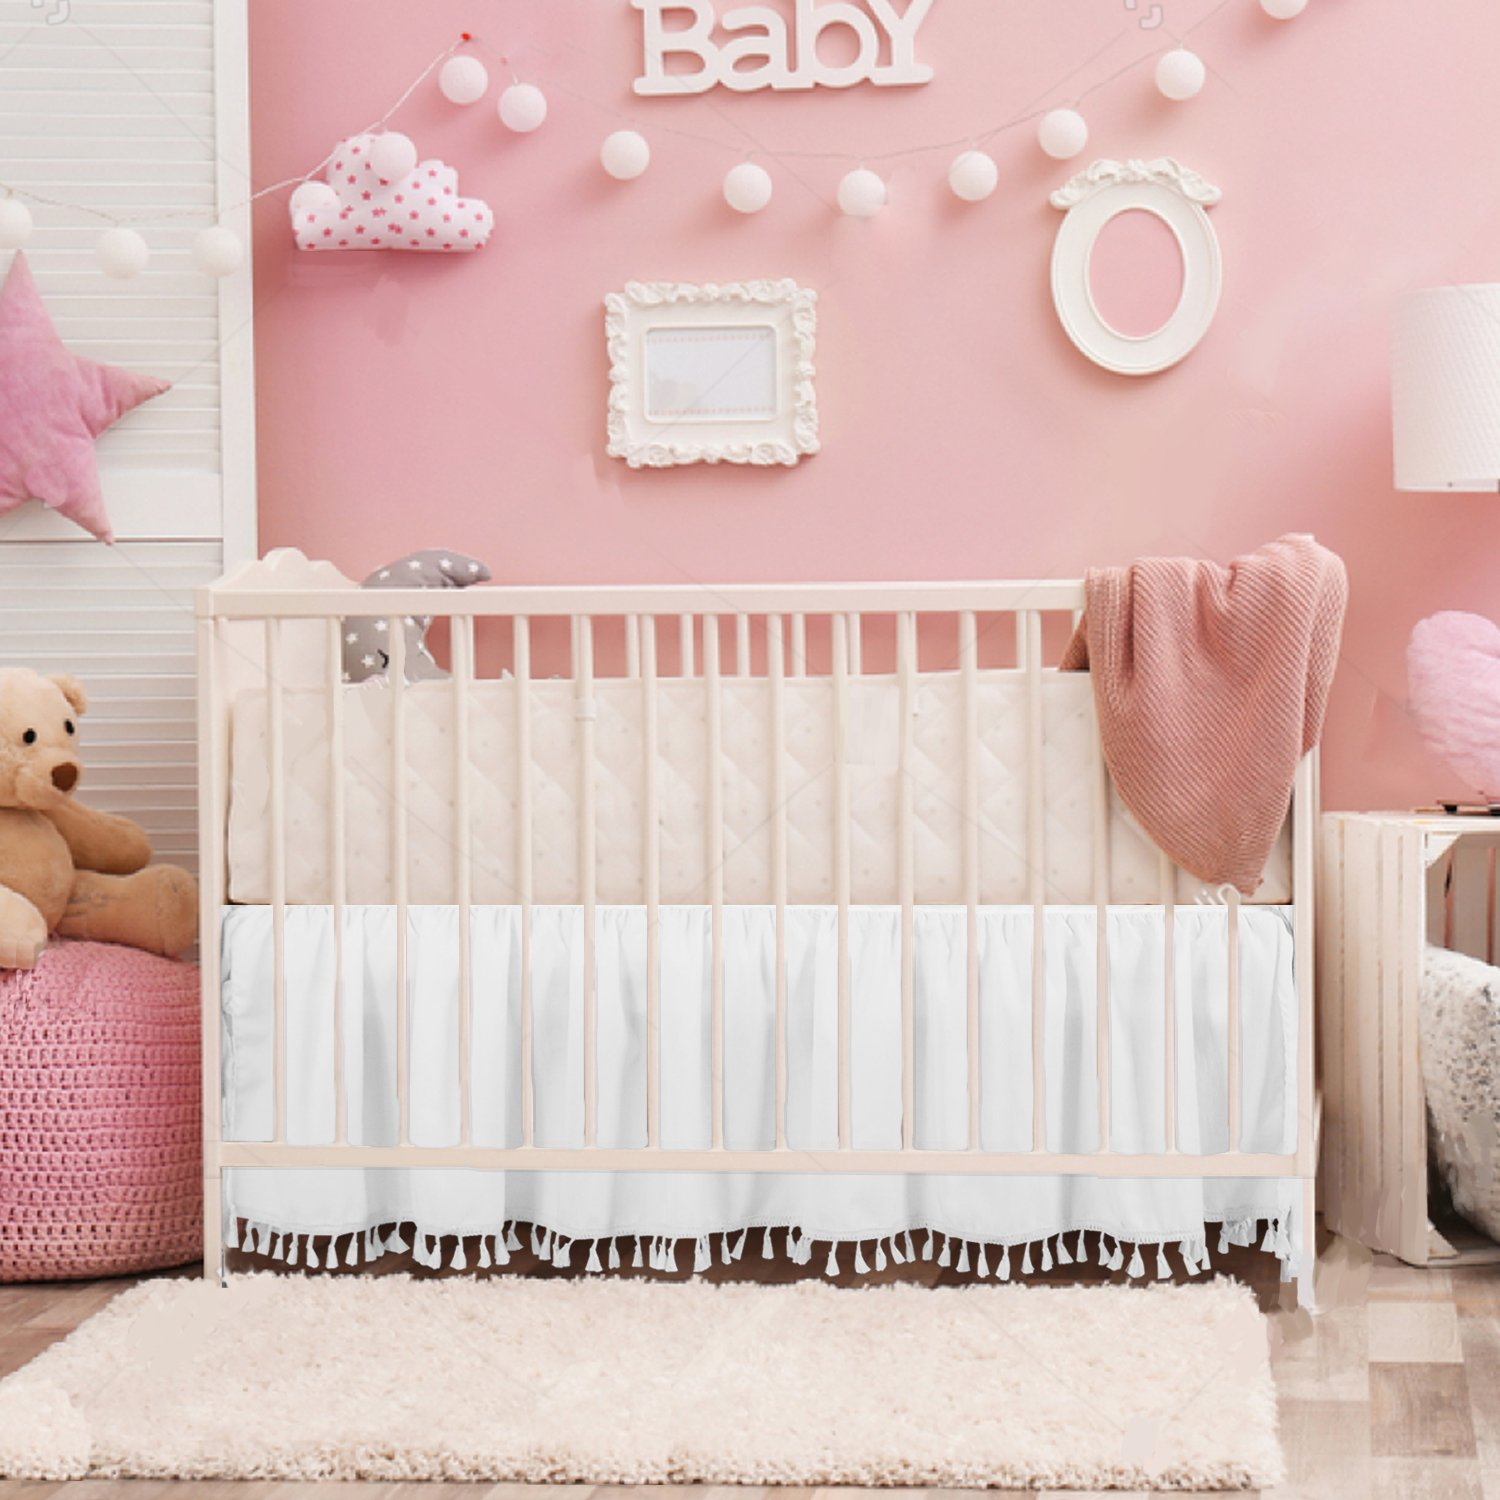 White Crib Bed Skirt Dust Ruffle with Tassel Trim Nursery Crib Bedding Skirt for Baby Boys and Girls,14'Drop by CO-AVE